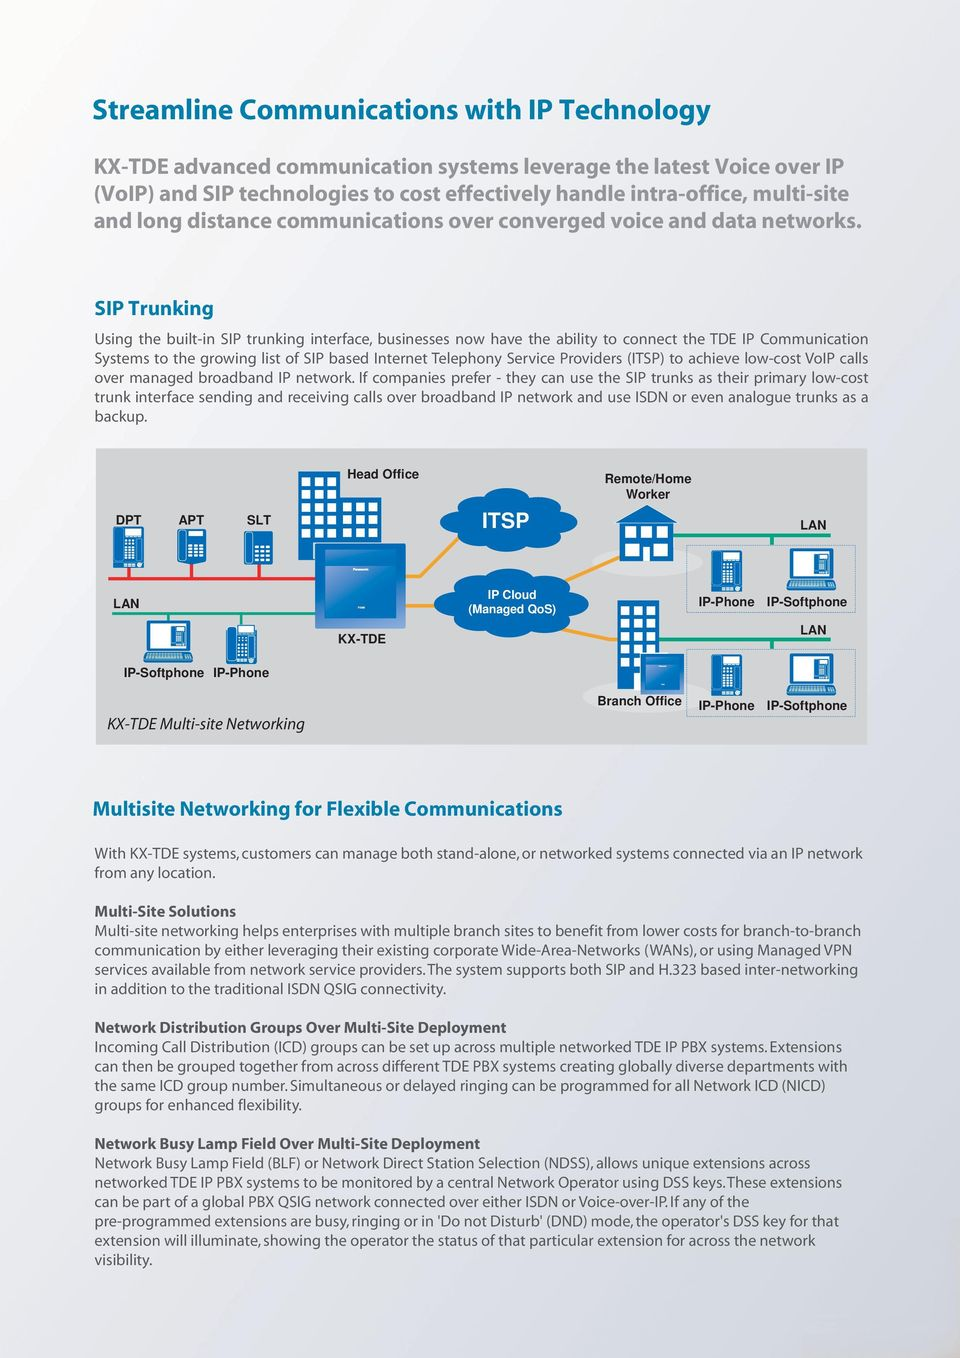 SIP Trunking Using the built-in SIP trunking interface, businesses now have the ability to connect the TDE IP Communication Systems to the growing list of SIP based Internet Telephony Service